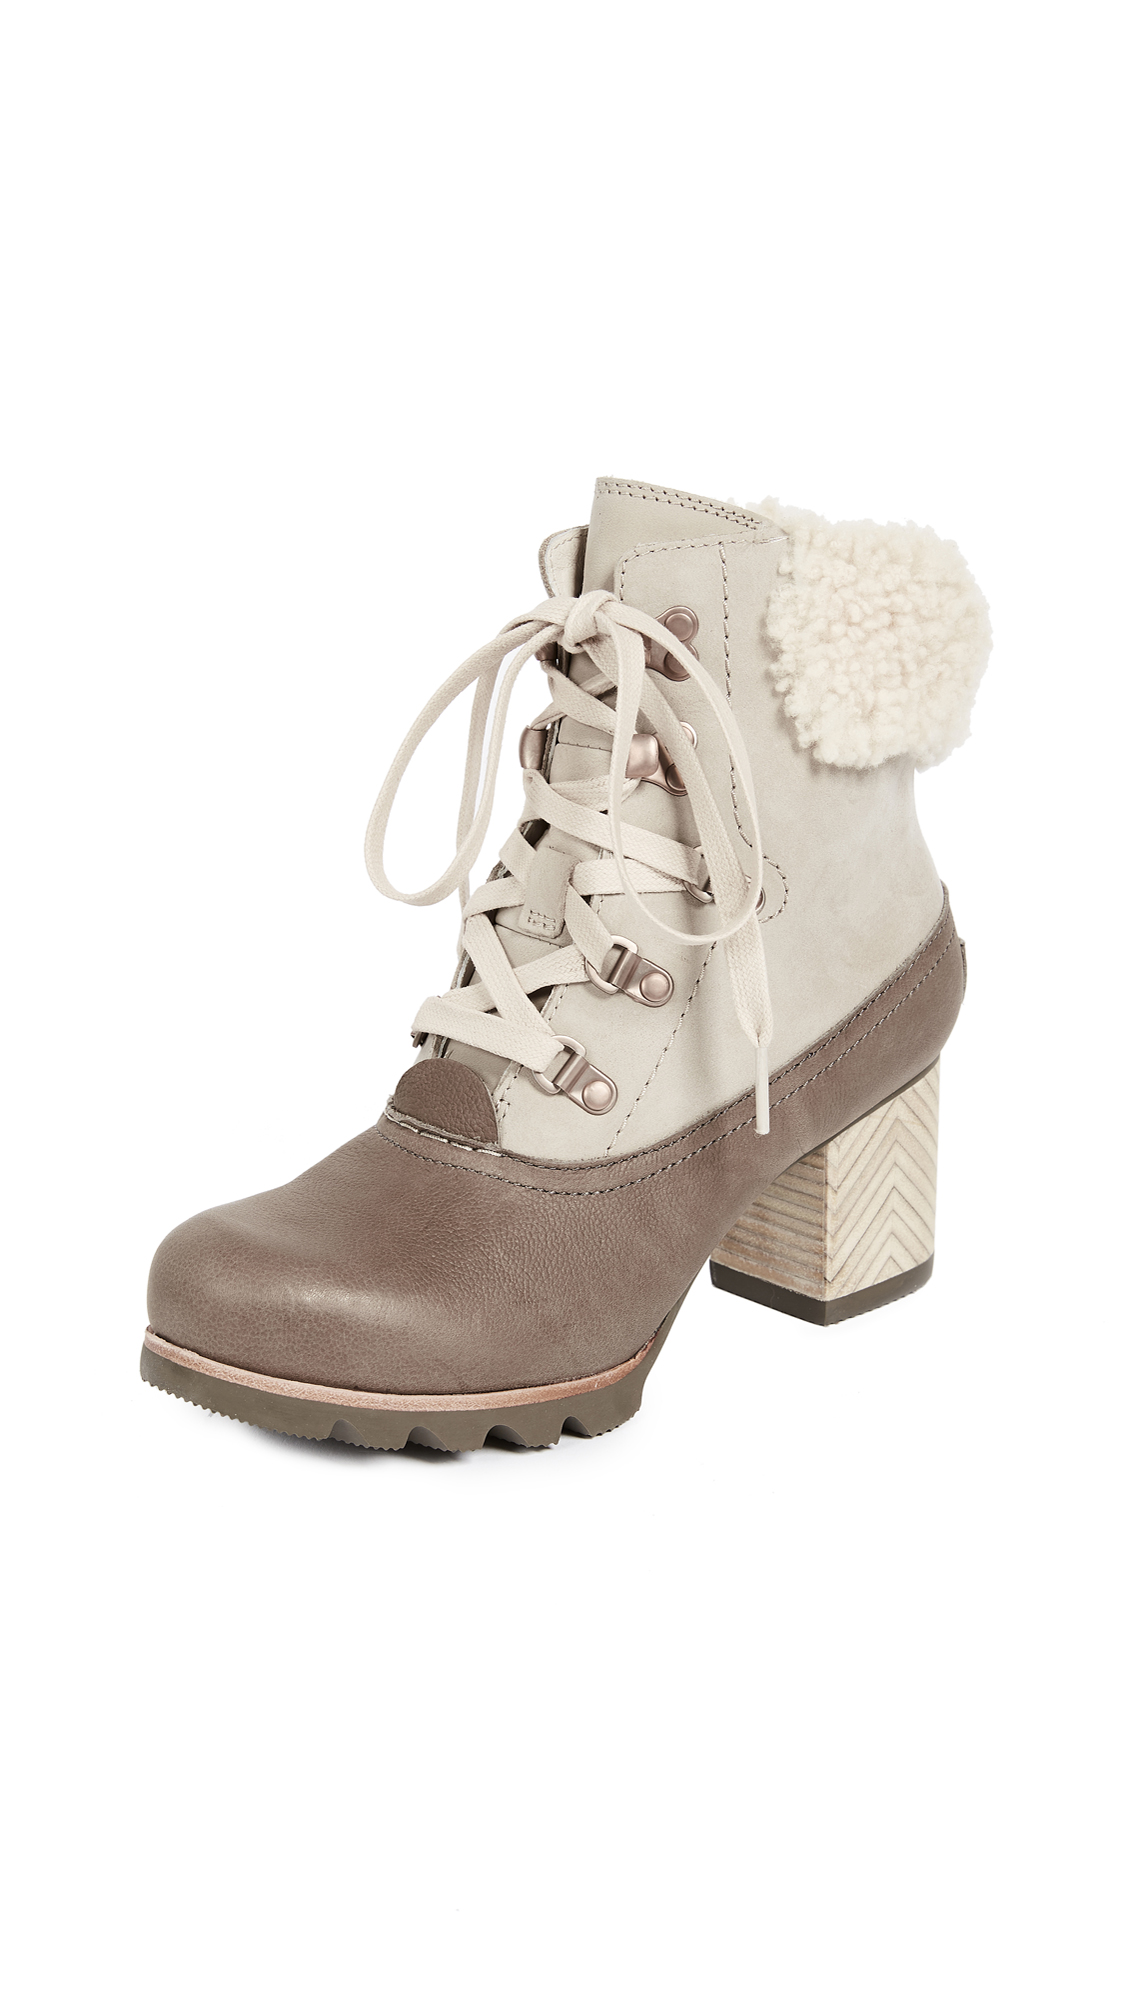 Sorel Jayne Luxe Booties - Ancient Fossil/Mud